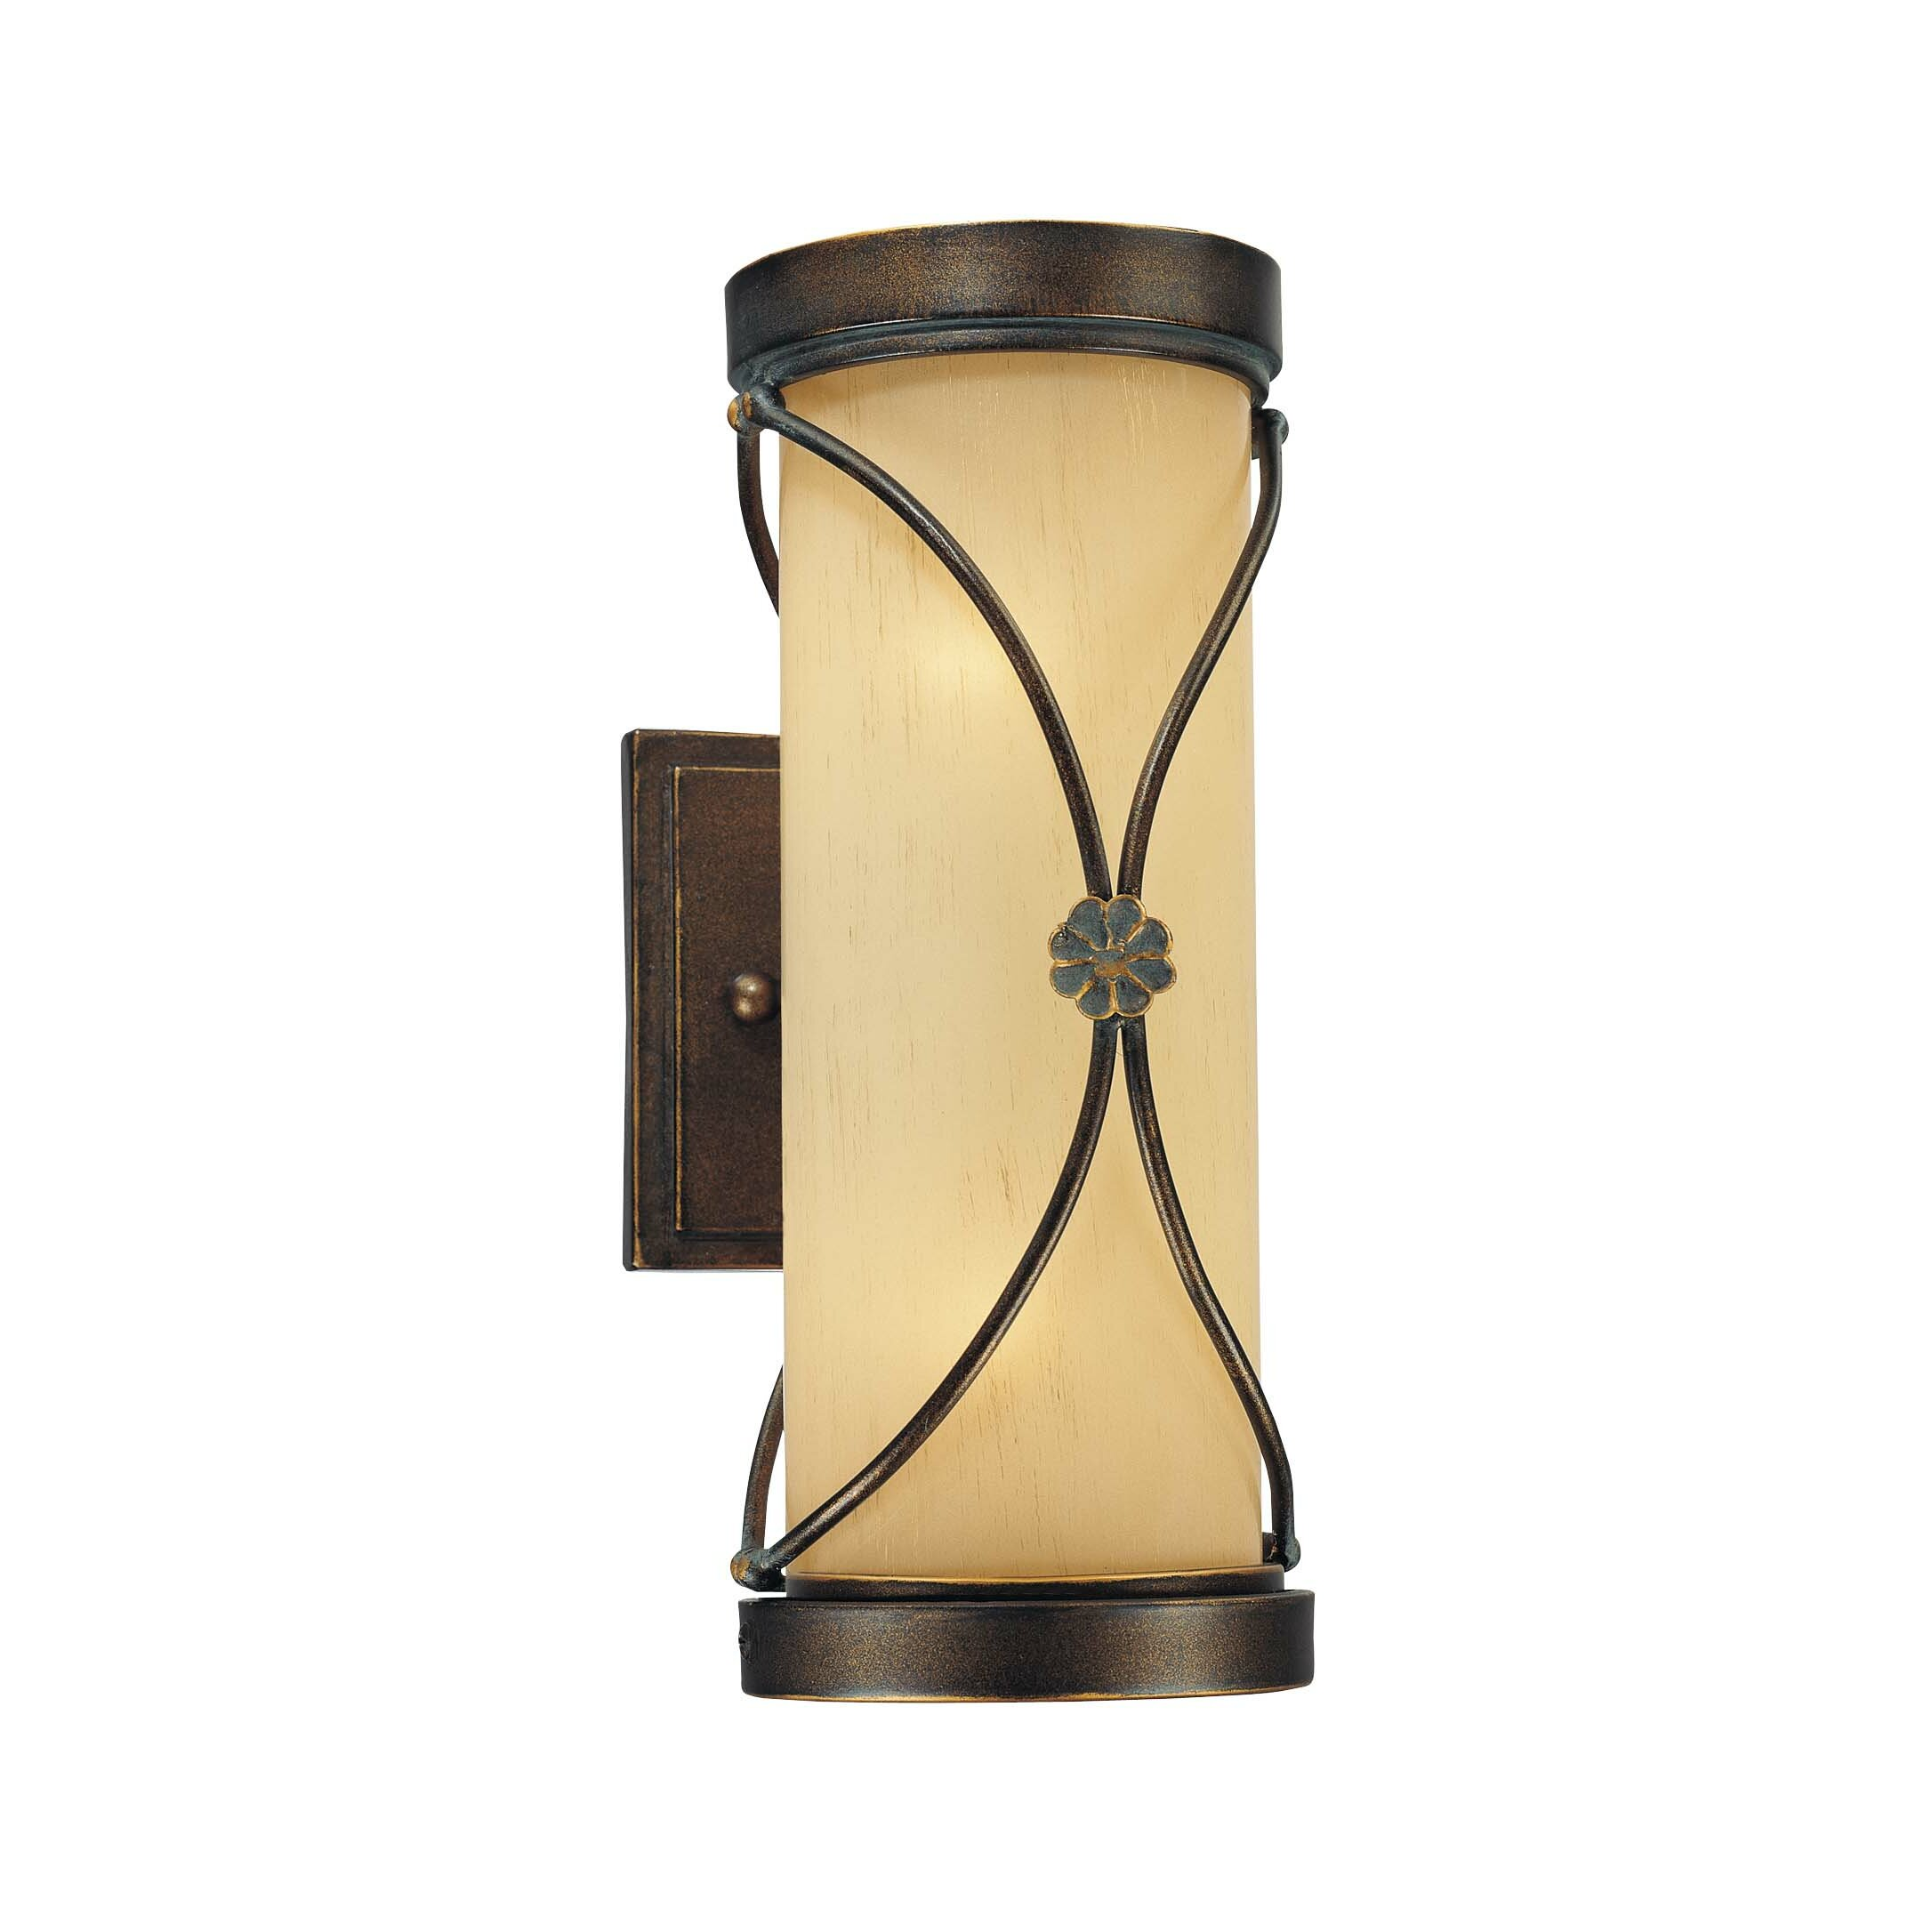 Minka Lavery Atterbury 2 Light Wall Sconce Reviews Wayfair